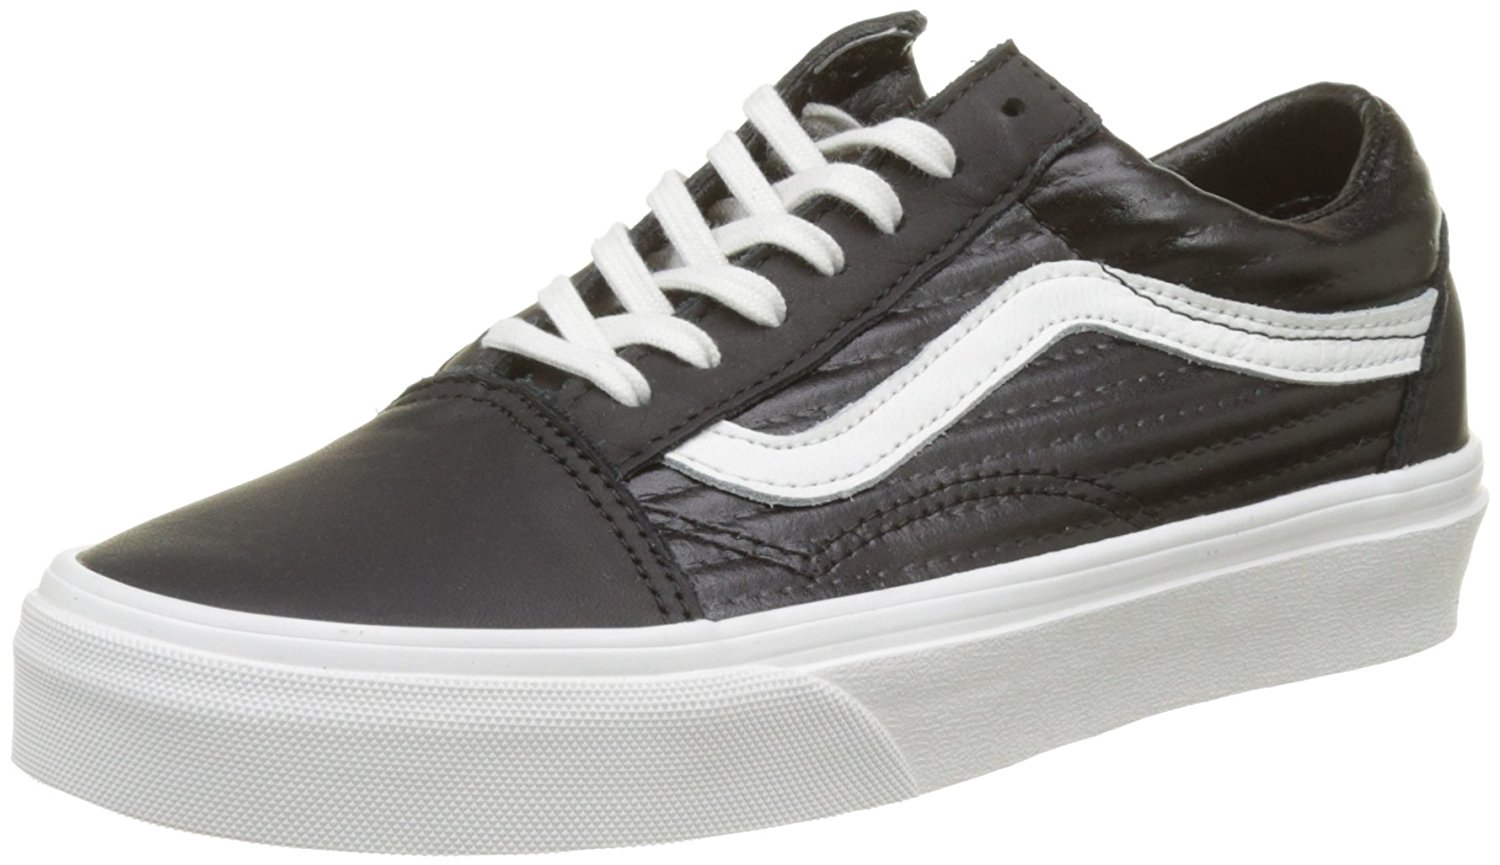 dcf8cd1f0011 Buy Vans Men  39 s Classic 106 Vulcanized Trainers